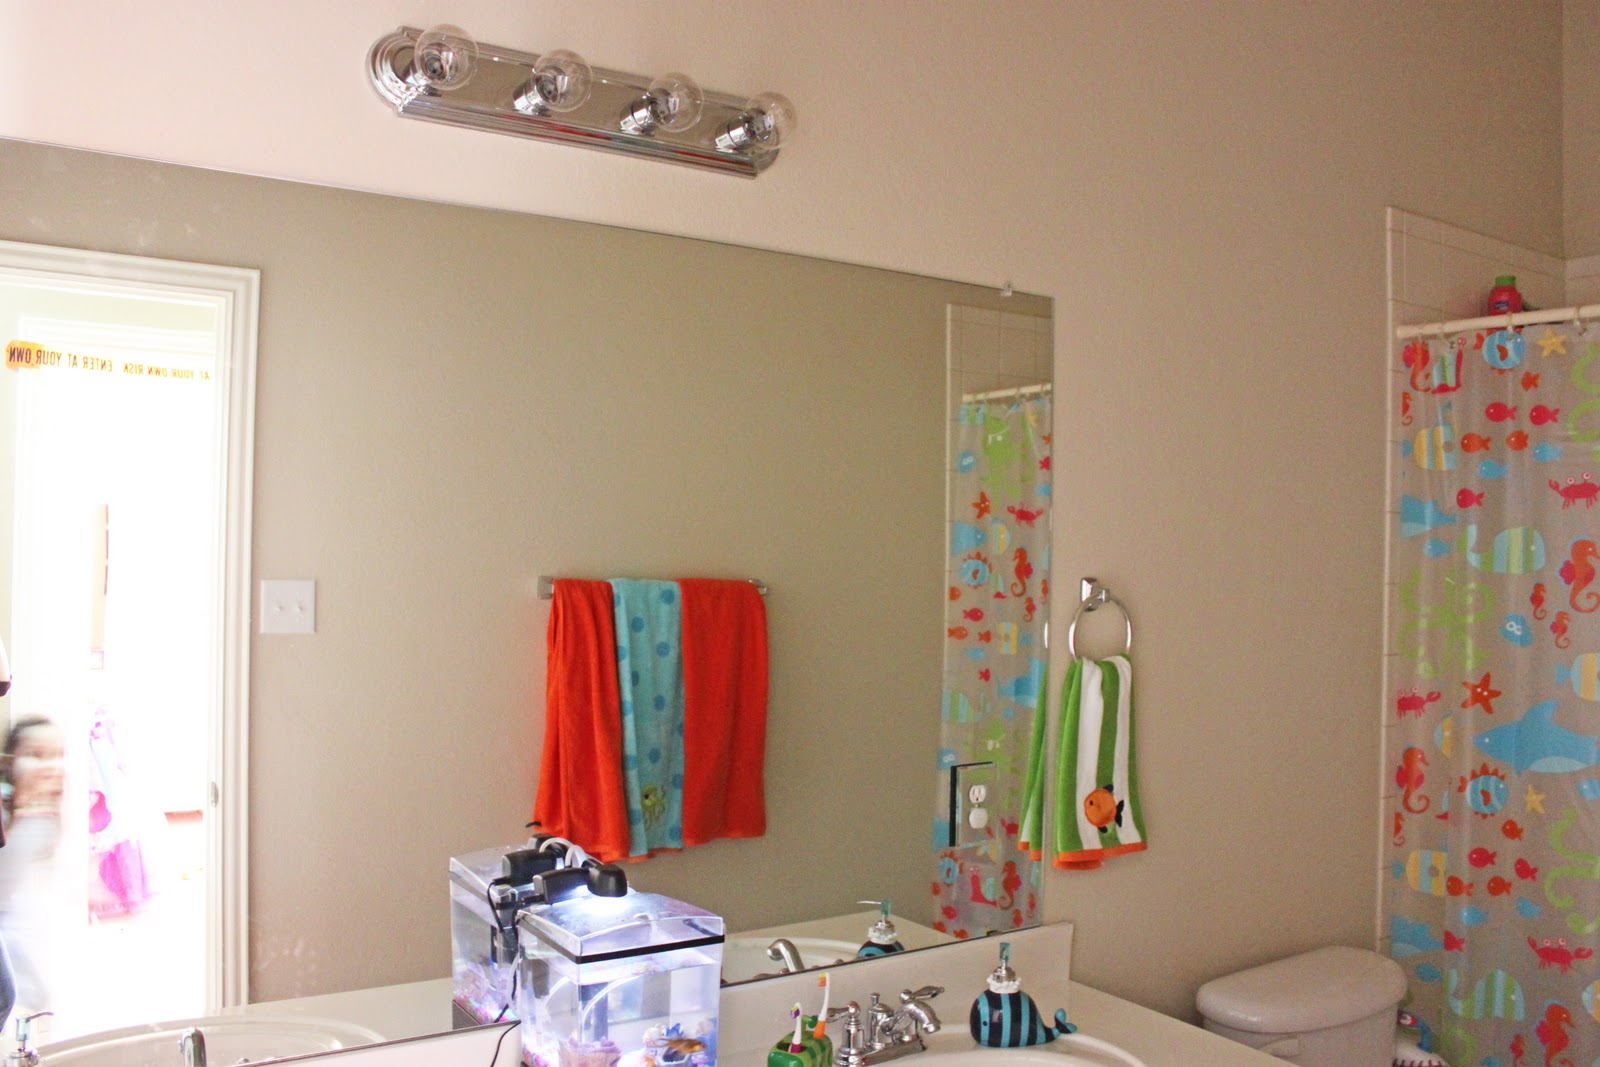 Diy Easy Framed Mirrors: A Little Of This, A Little Of That: $20 DIY Mirror Frame